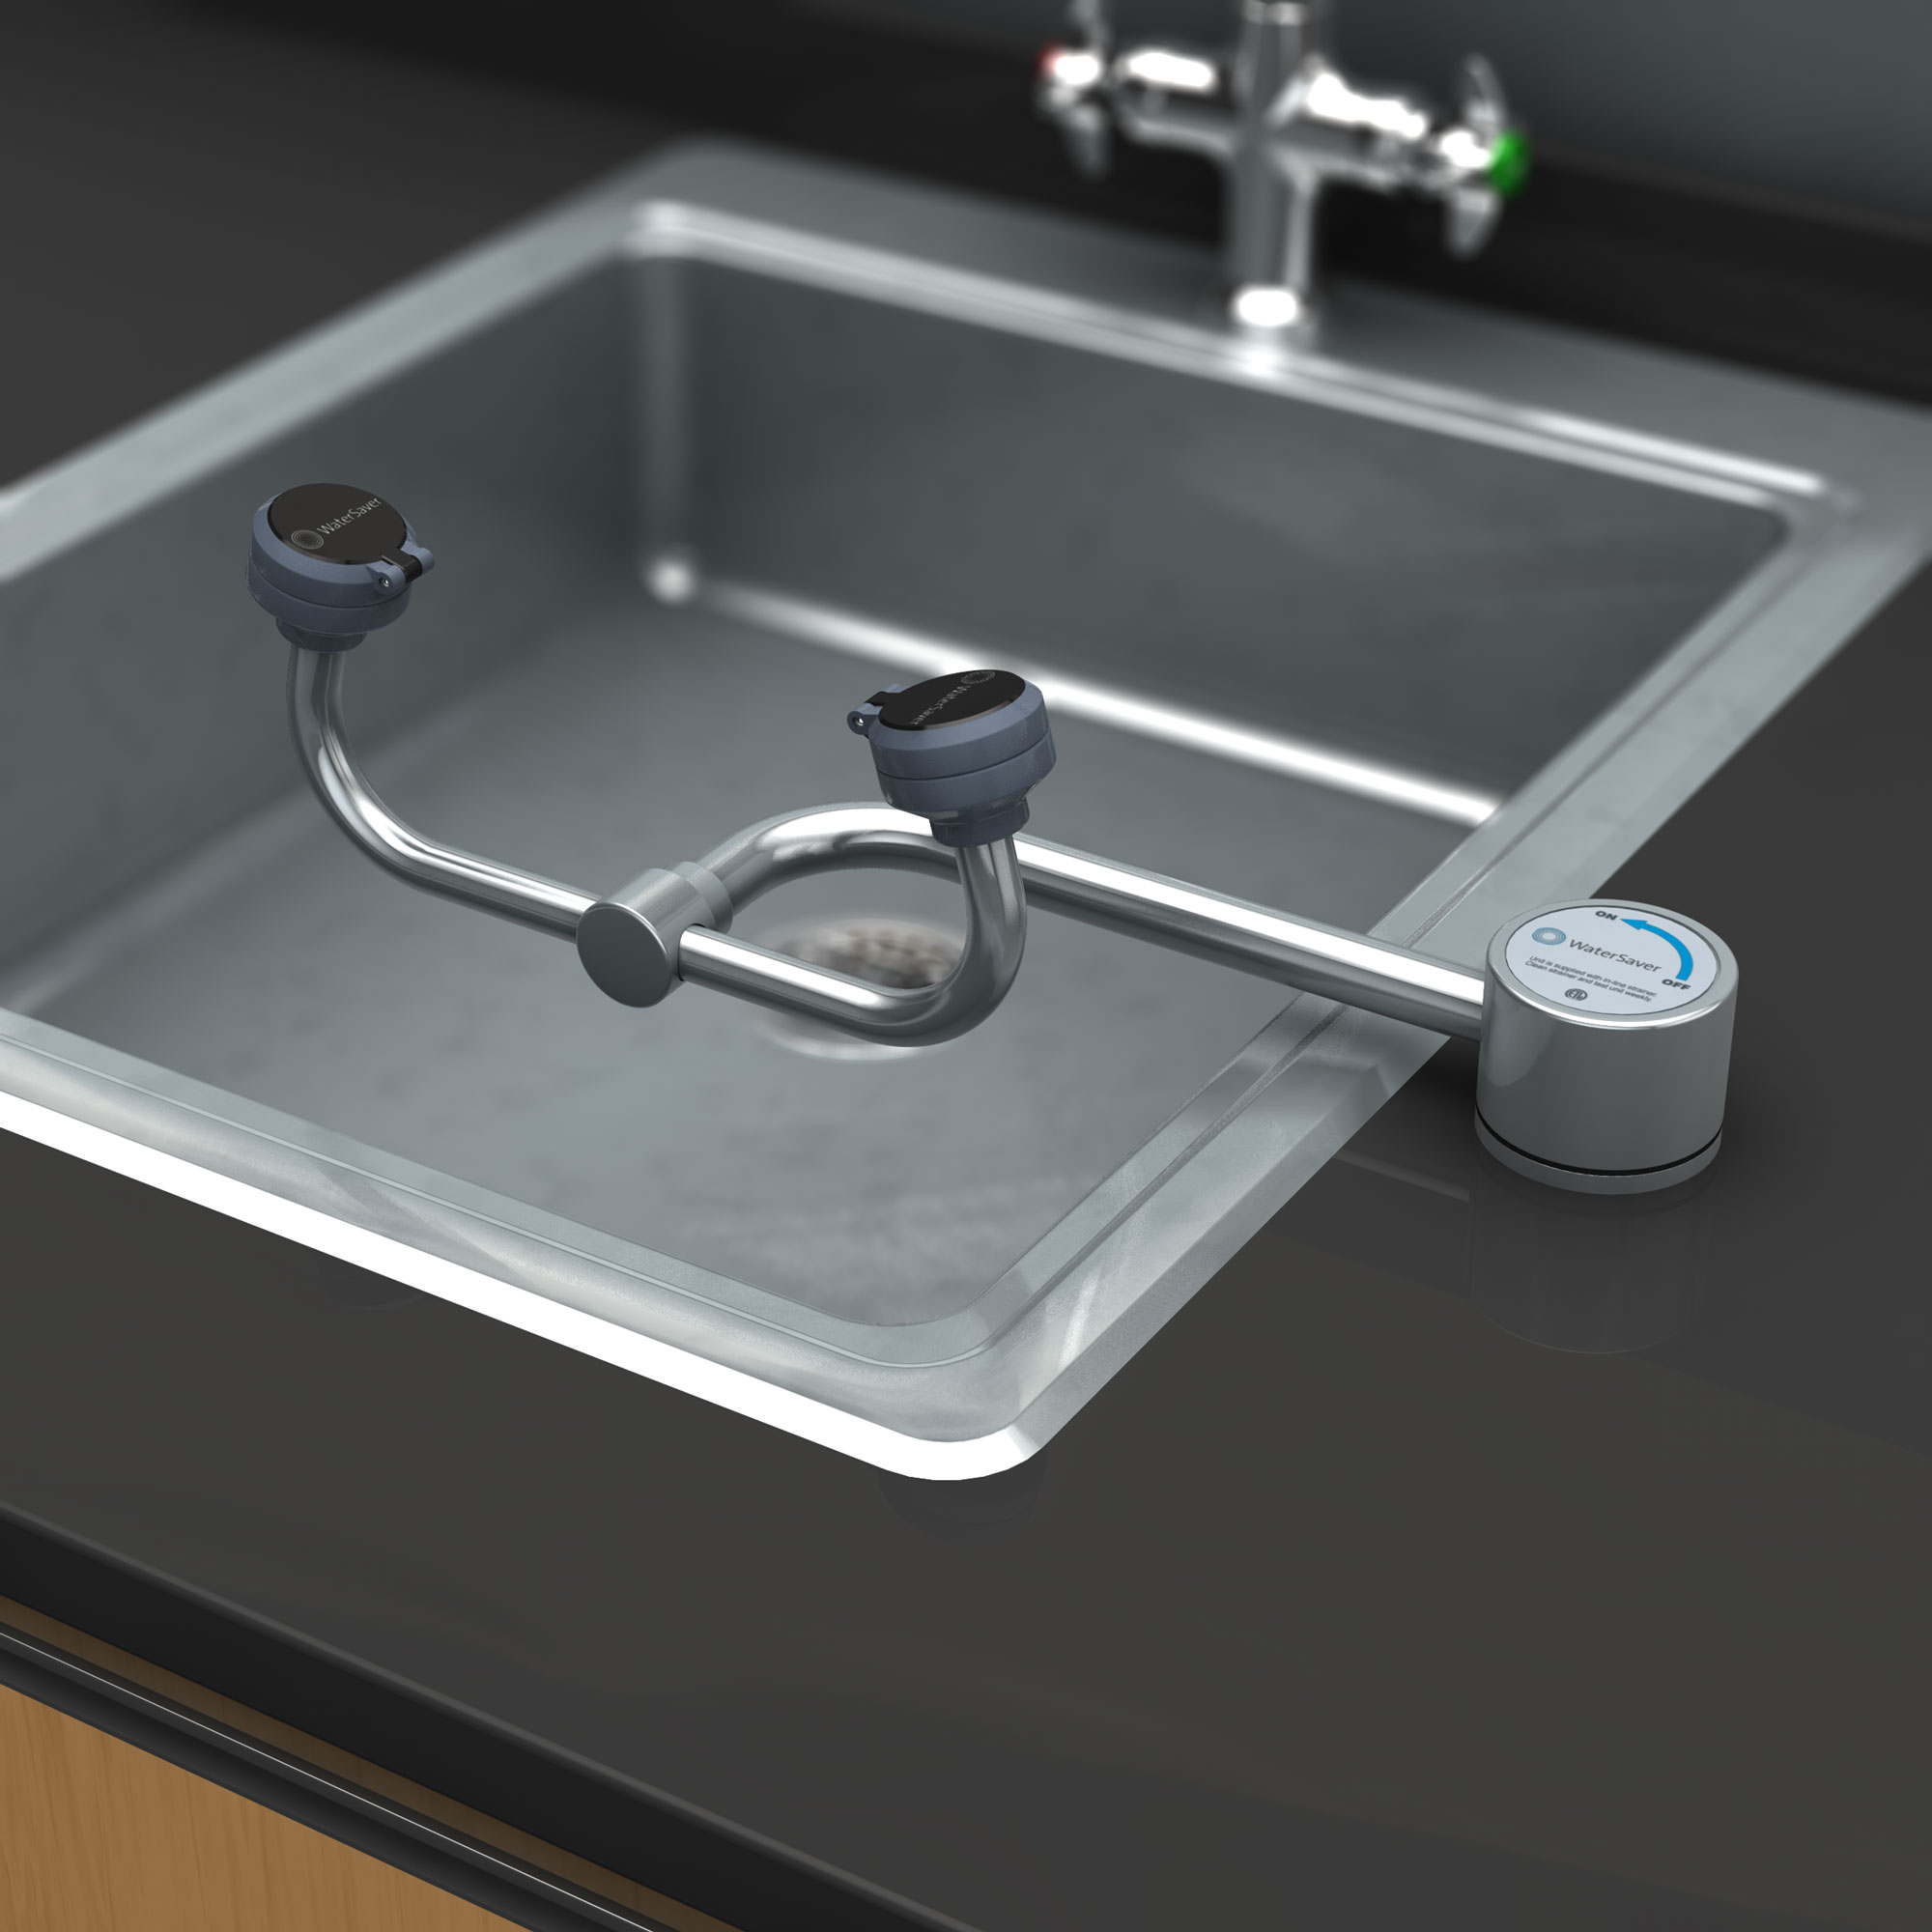 Eyewashes – WaterSaver Faucet Co.